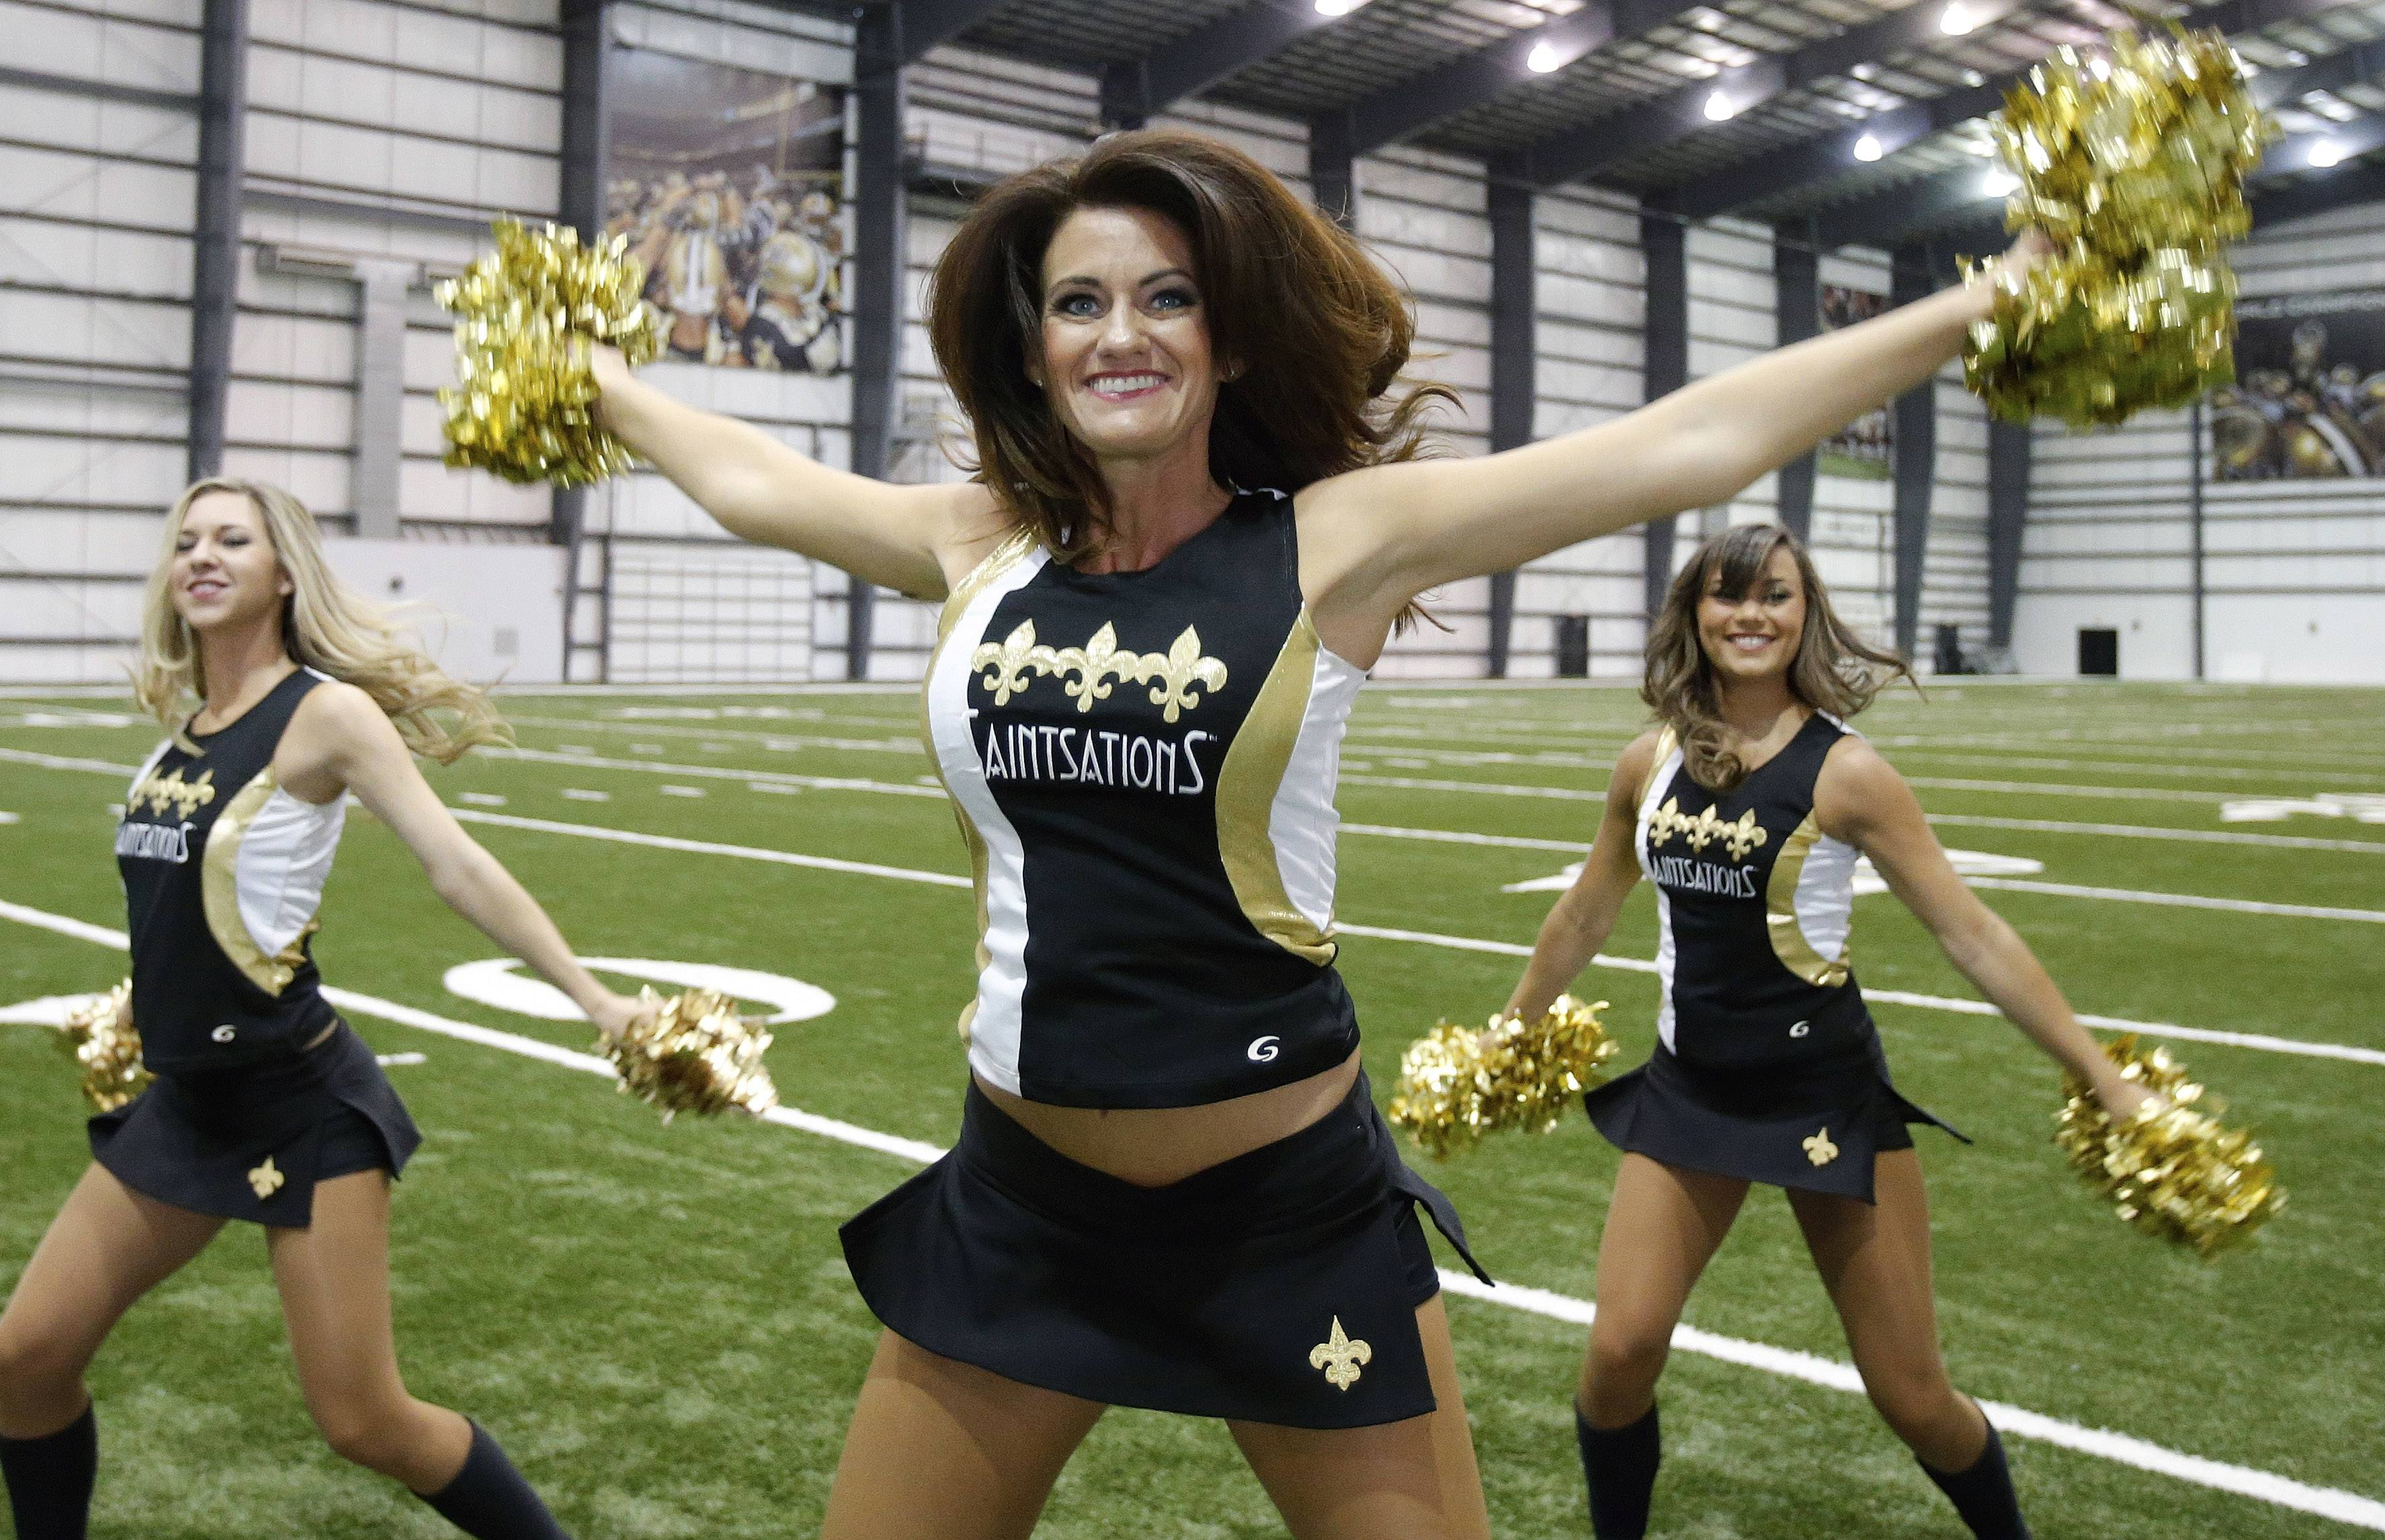 New Orleans Saints Saintsation Kriste Lewis performs during a photo shoot at the NFL football team's training facility in Metairie, La., Wednesday, July 16, 2014. Lewis is one of only two NFL cheerleaders in her 40s. The other dancer is 45-year-old Laura Vikmanis, who has been with the Cincinnati Bengals dance team, the Ben-Gals, since making the squad at age 40.